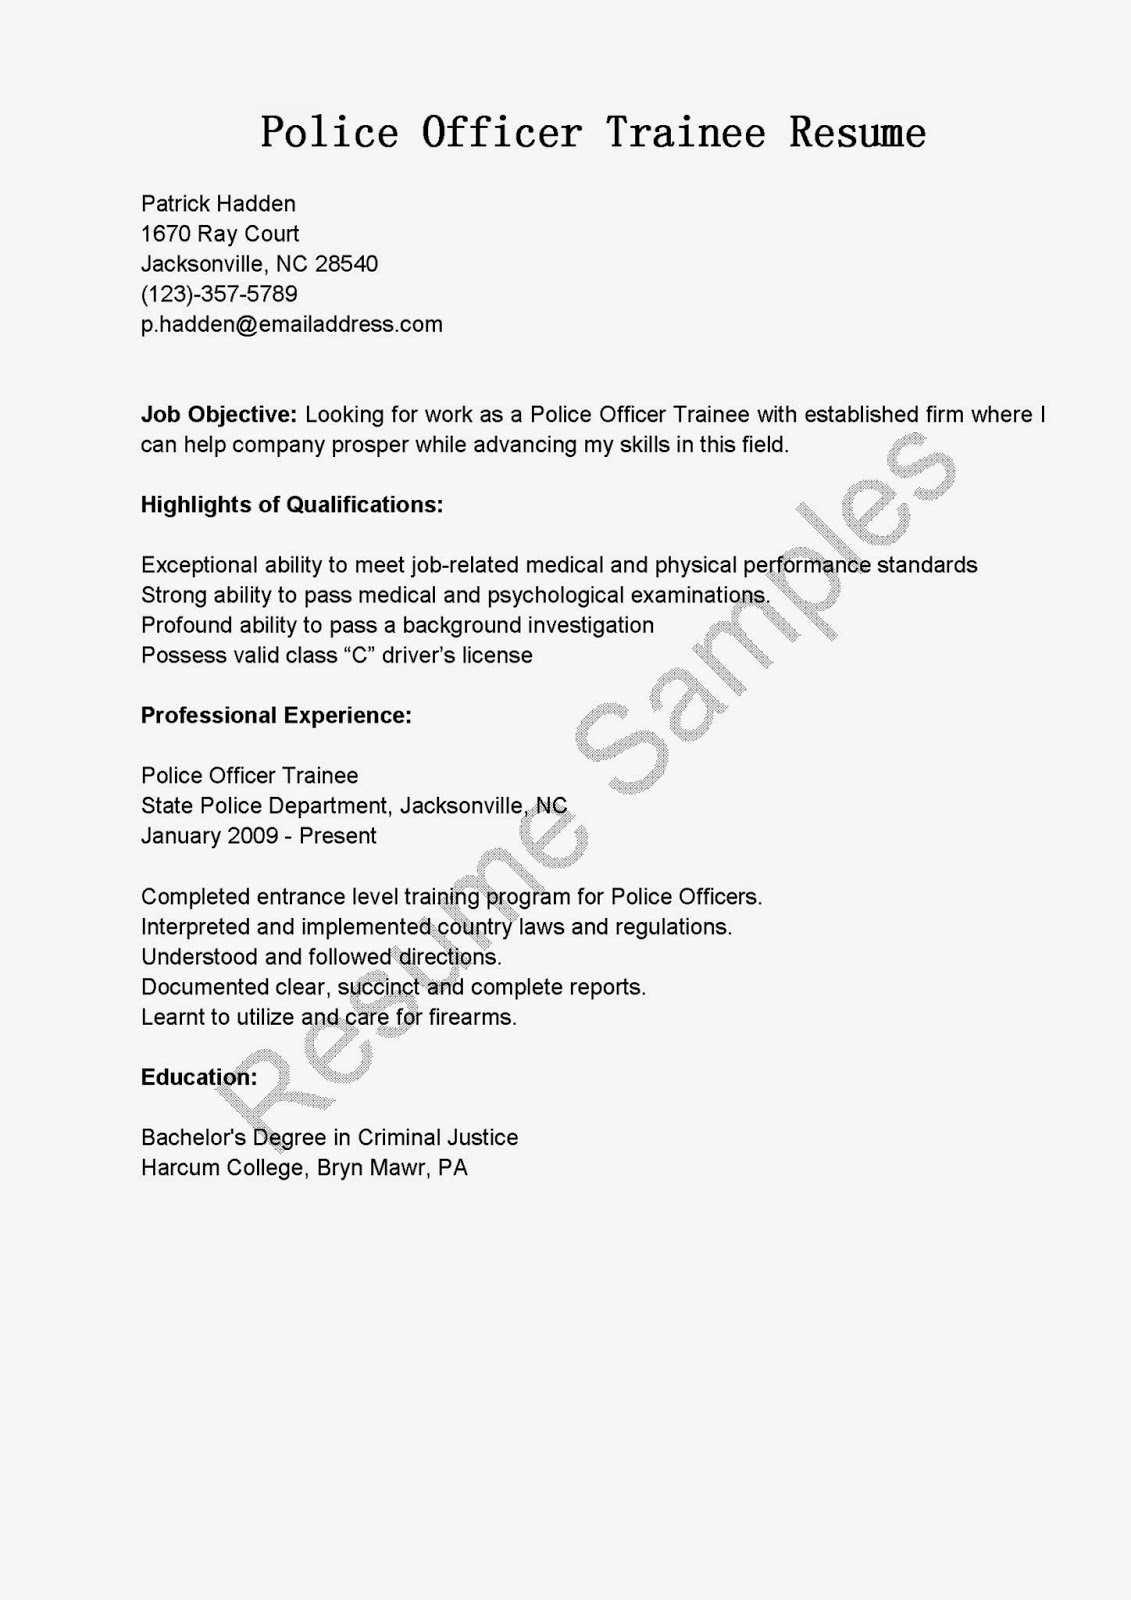 Where to buy nice resume paper